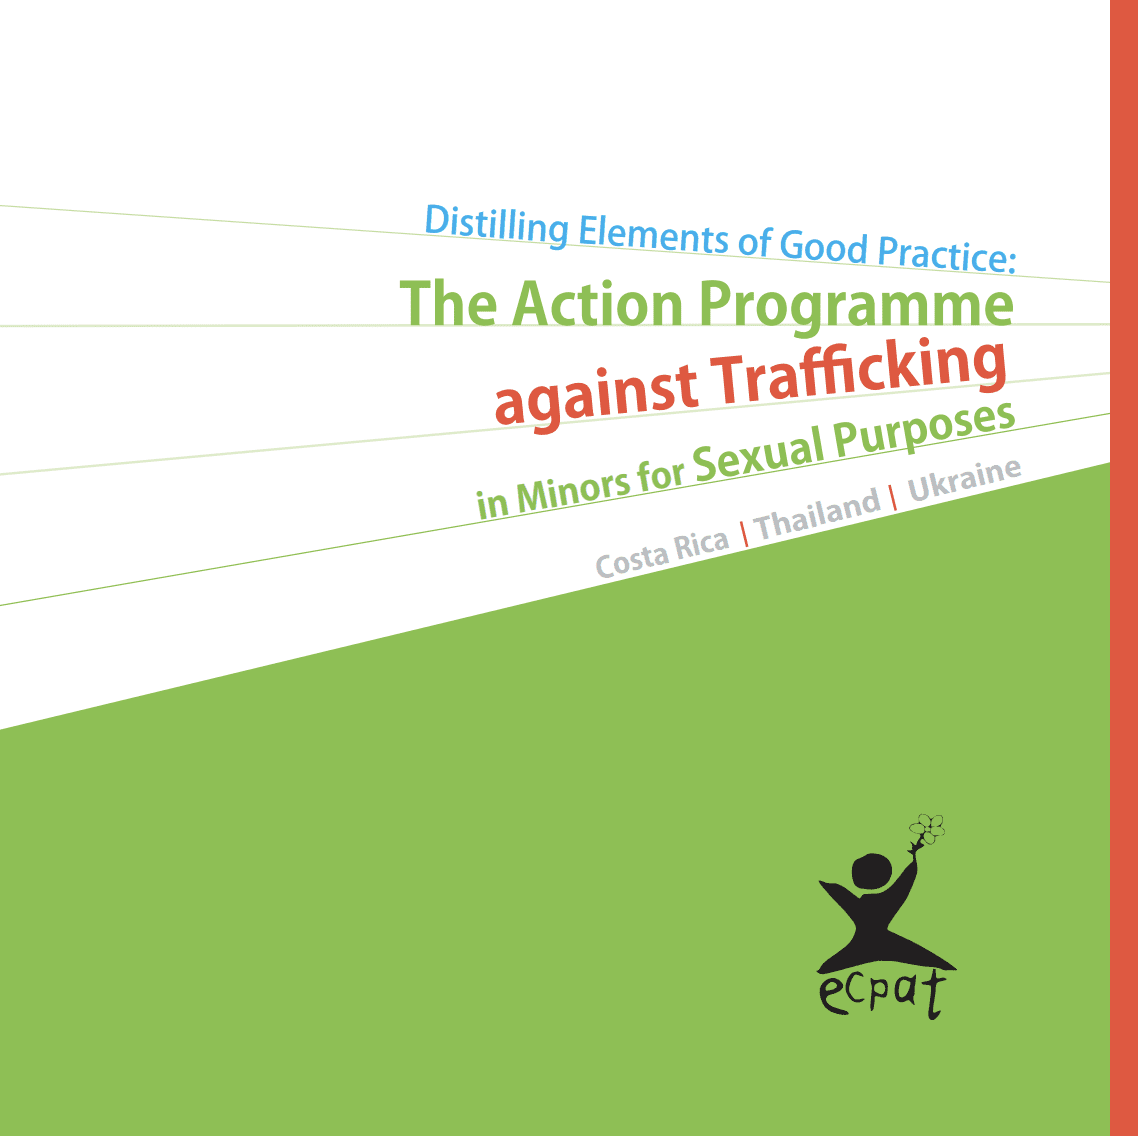 Distilling Elements of Good Practice: The Action Programme against Trafficking in Minors for Sexual Purposes